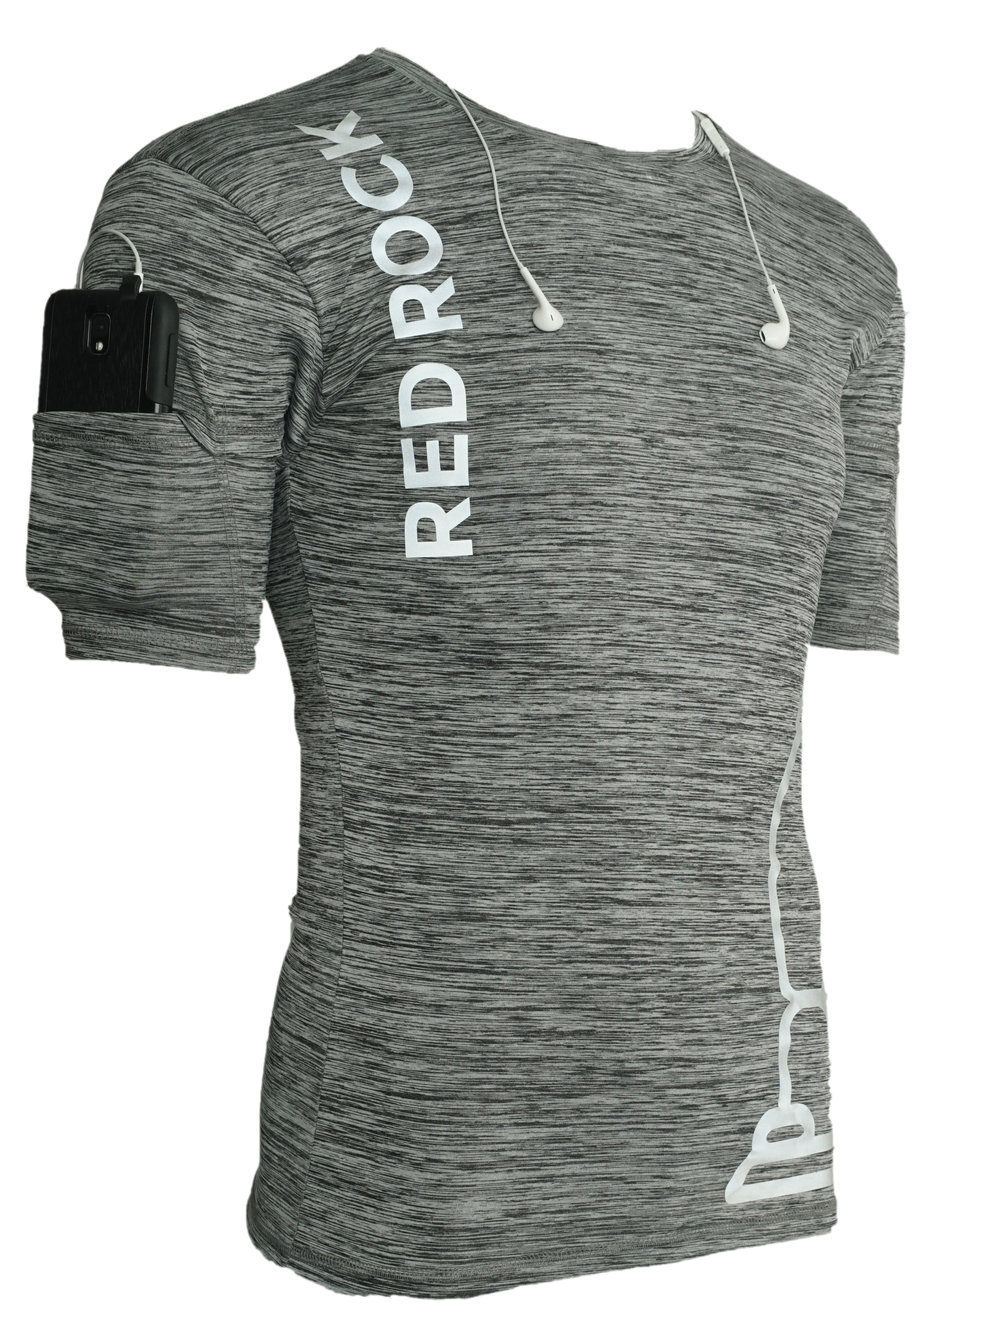 Men's Bryce Short Sleeved Running Shirt  -